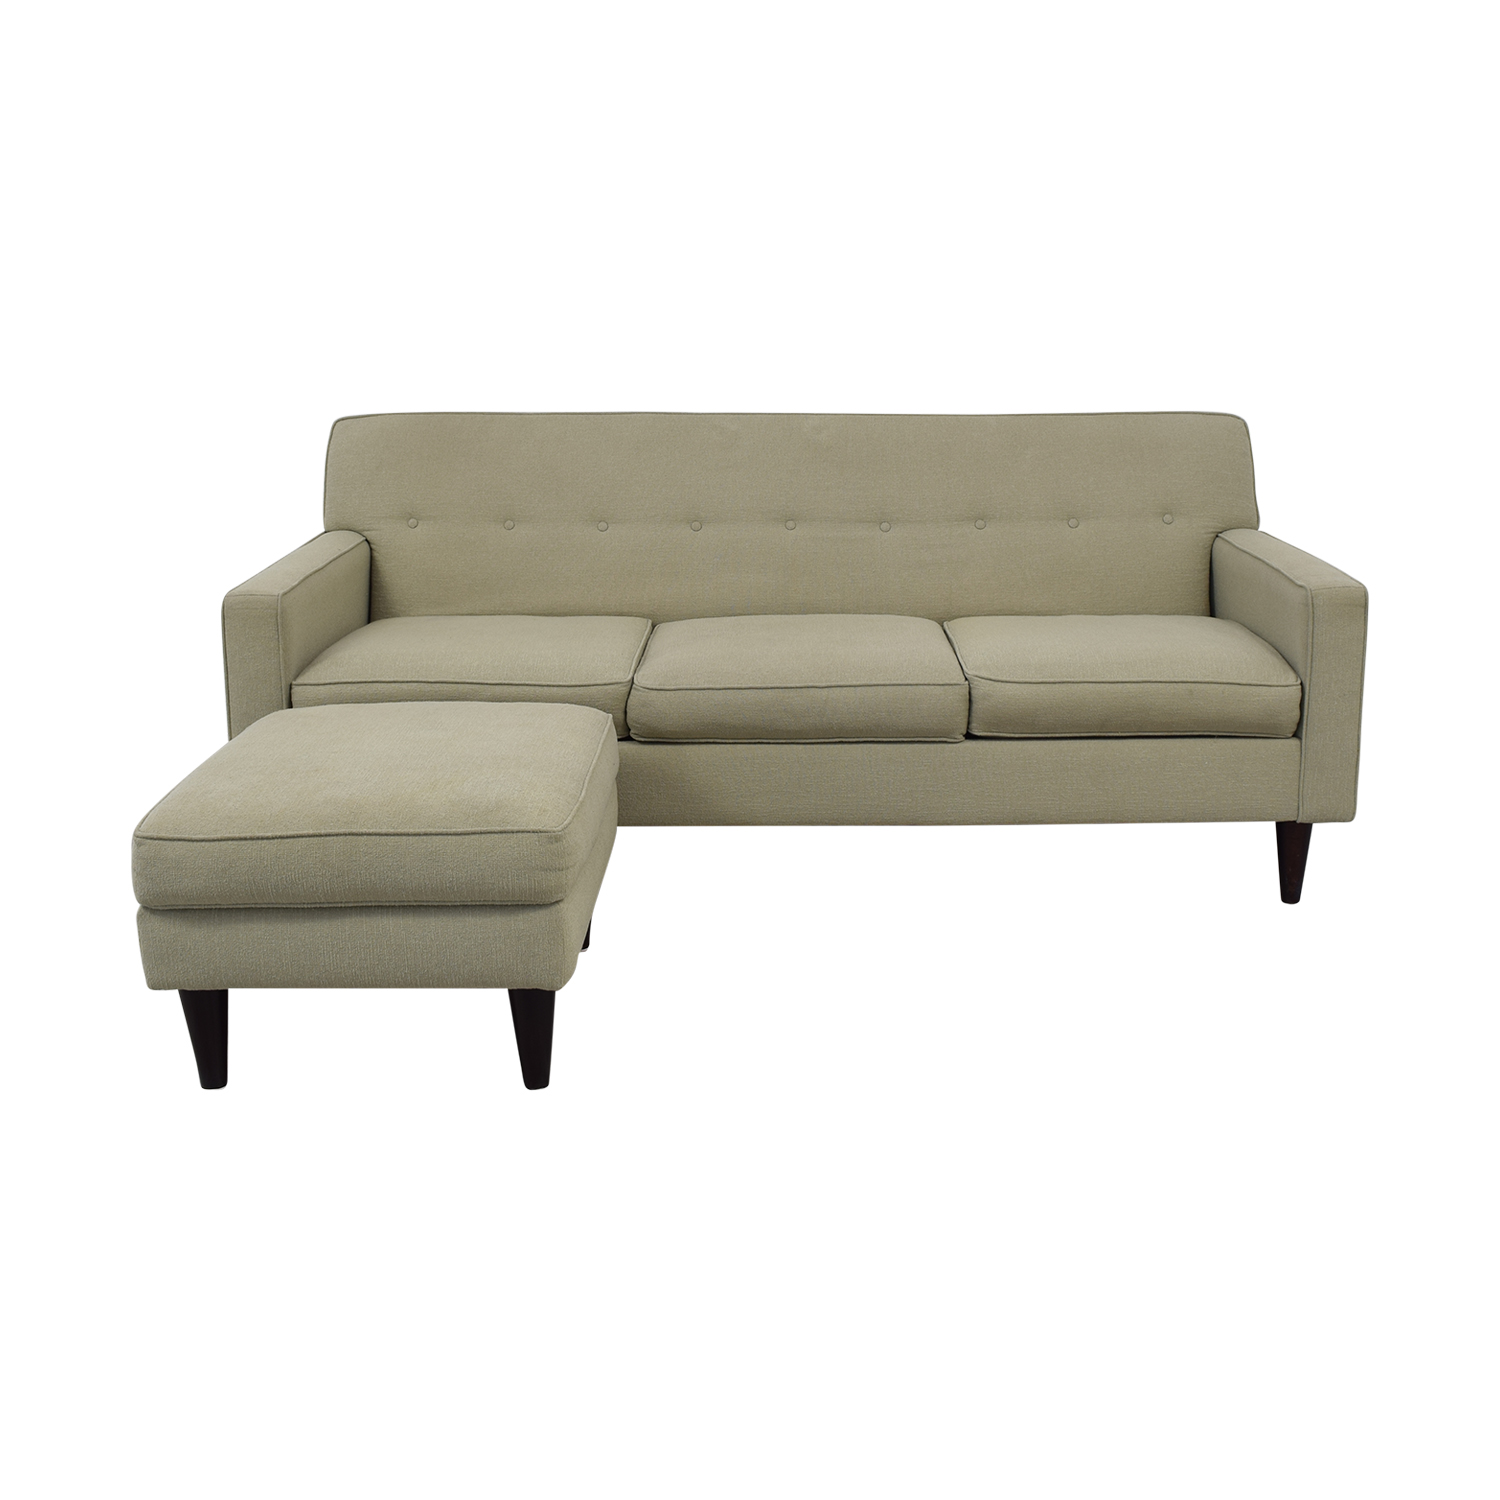 Max Home Furniture Max Home Mid-Century Style Sofa With Ottoman Sofas